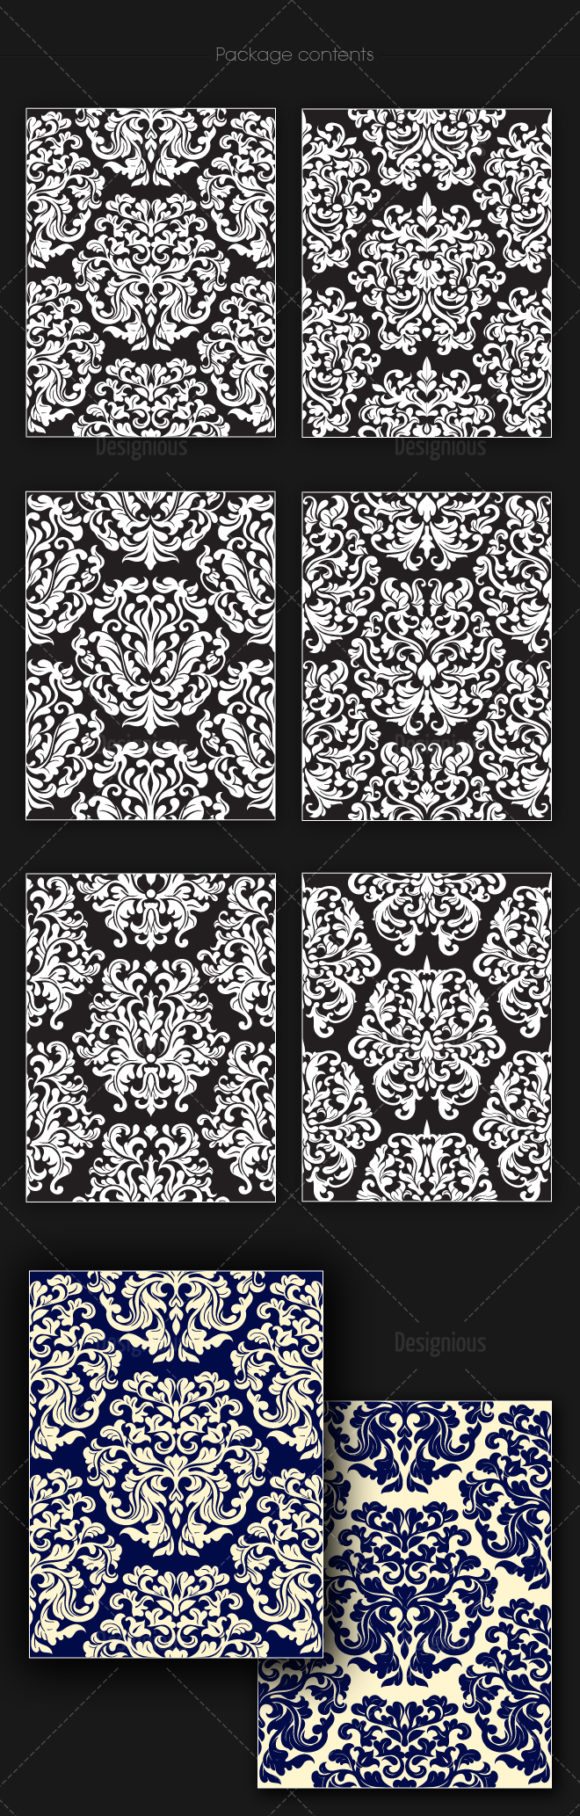 Seamless Patterns Vector Pack 145 products designious vector seamless 145 large